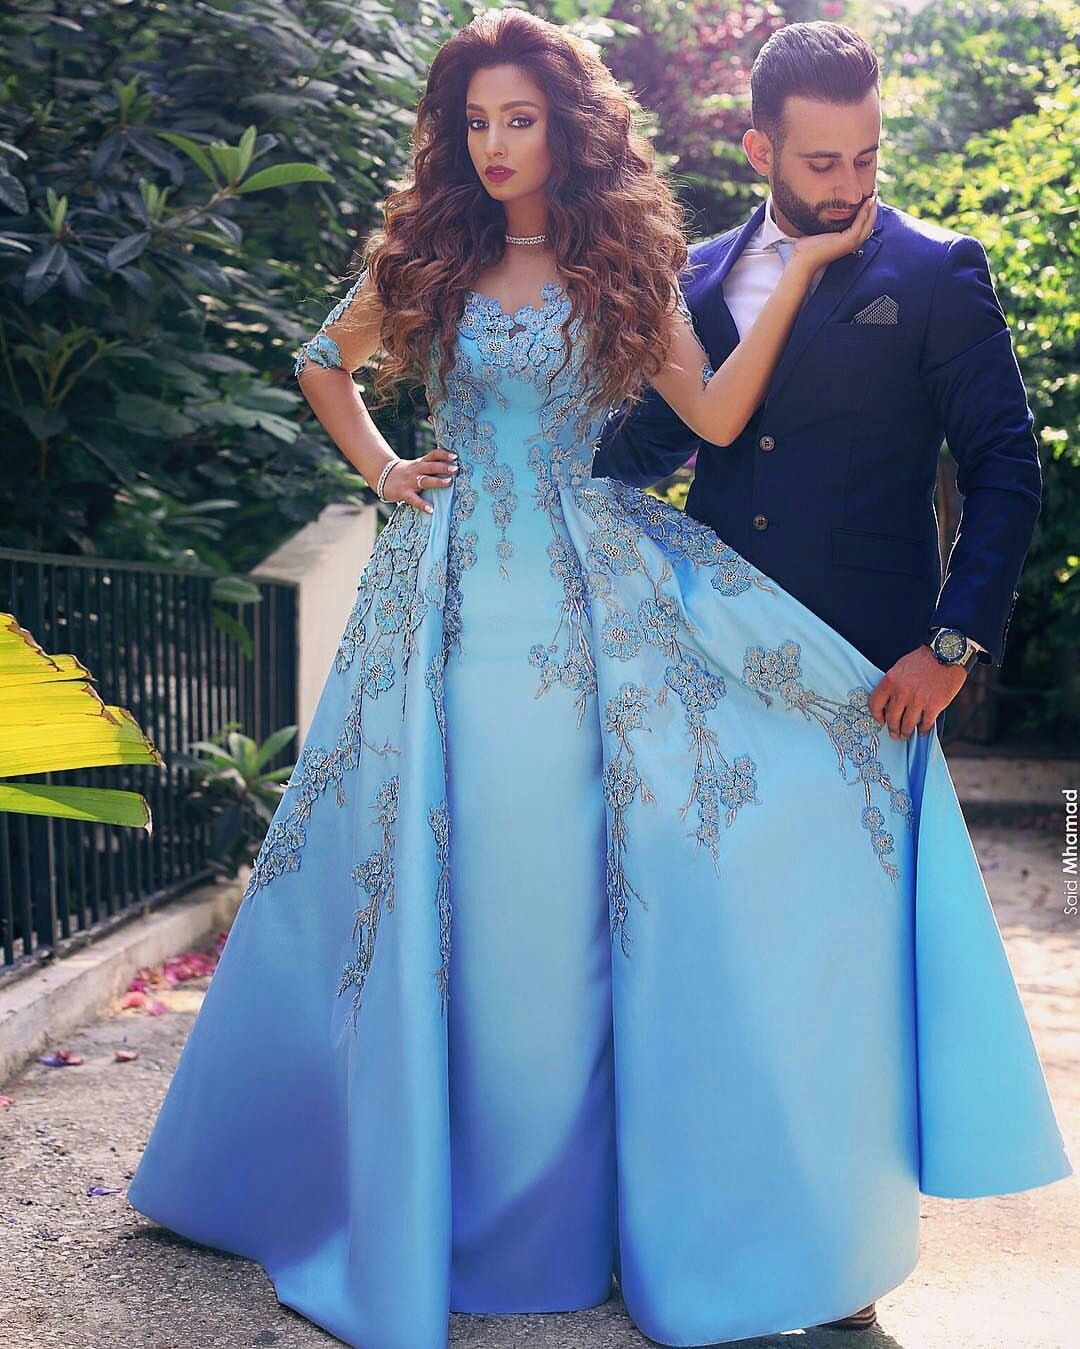 Pin by rebecca taylor on gorgeous gowns pinterest gowns